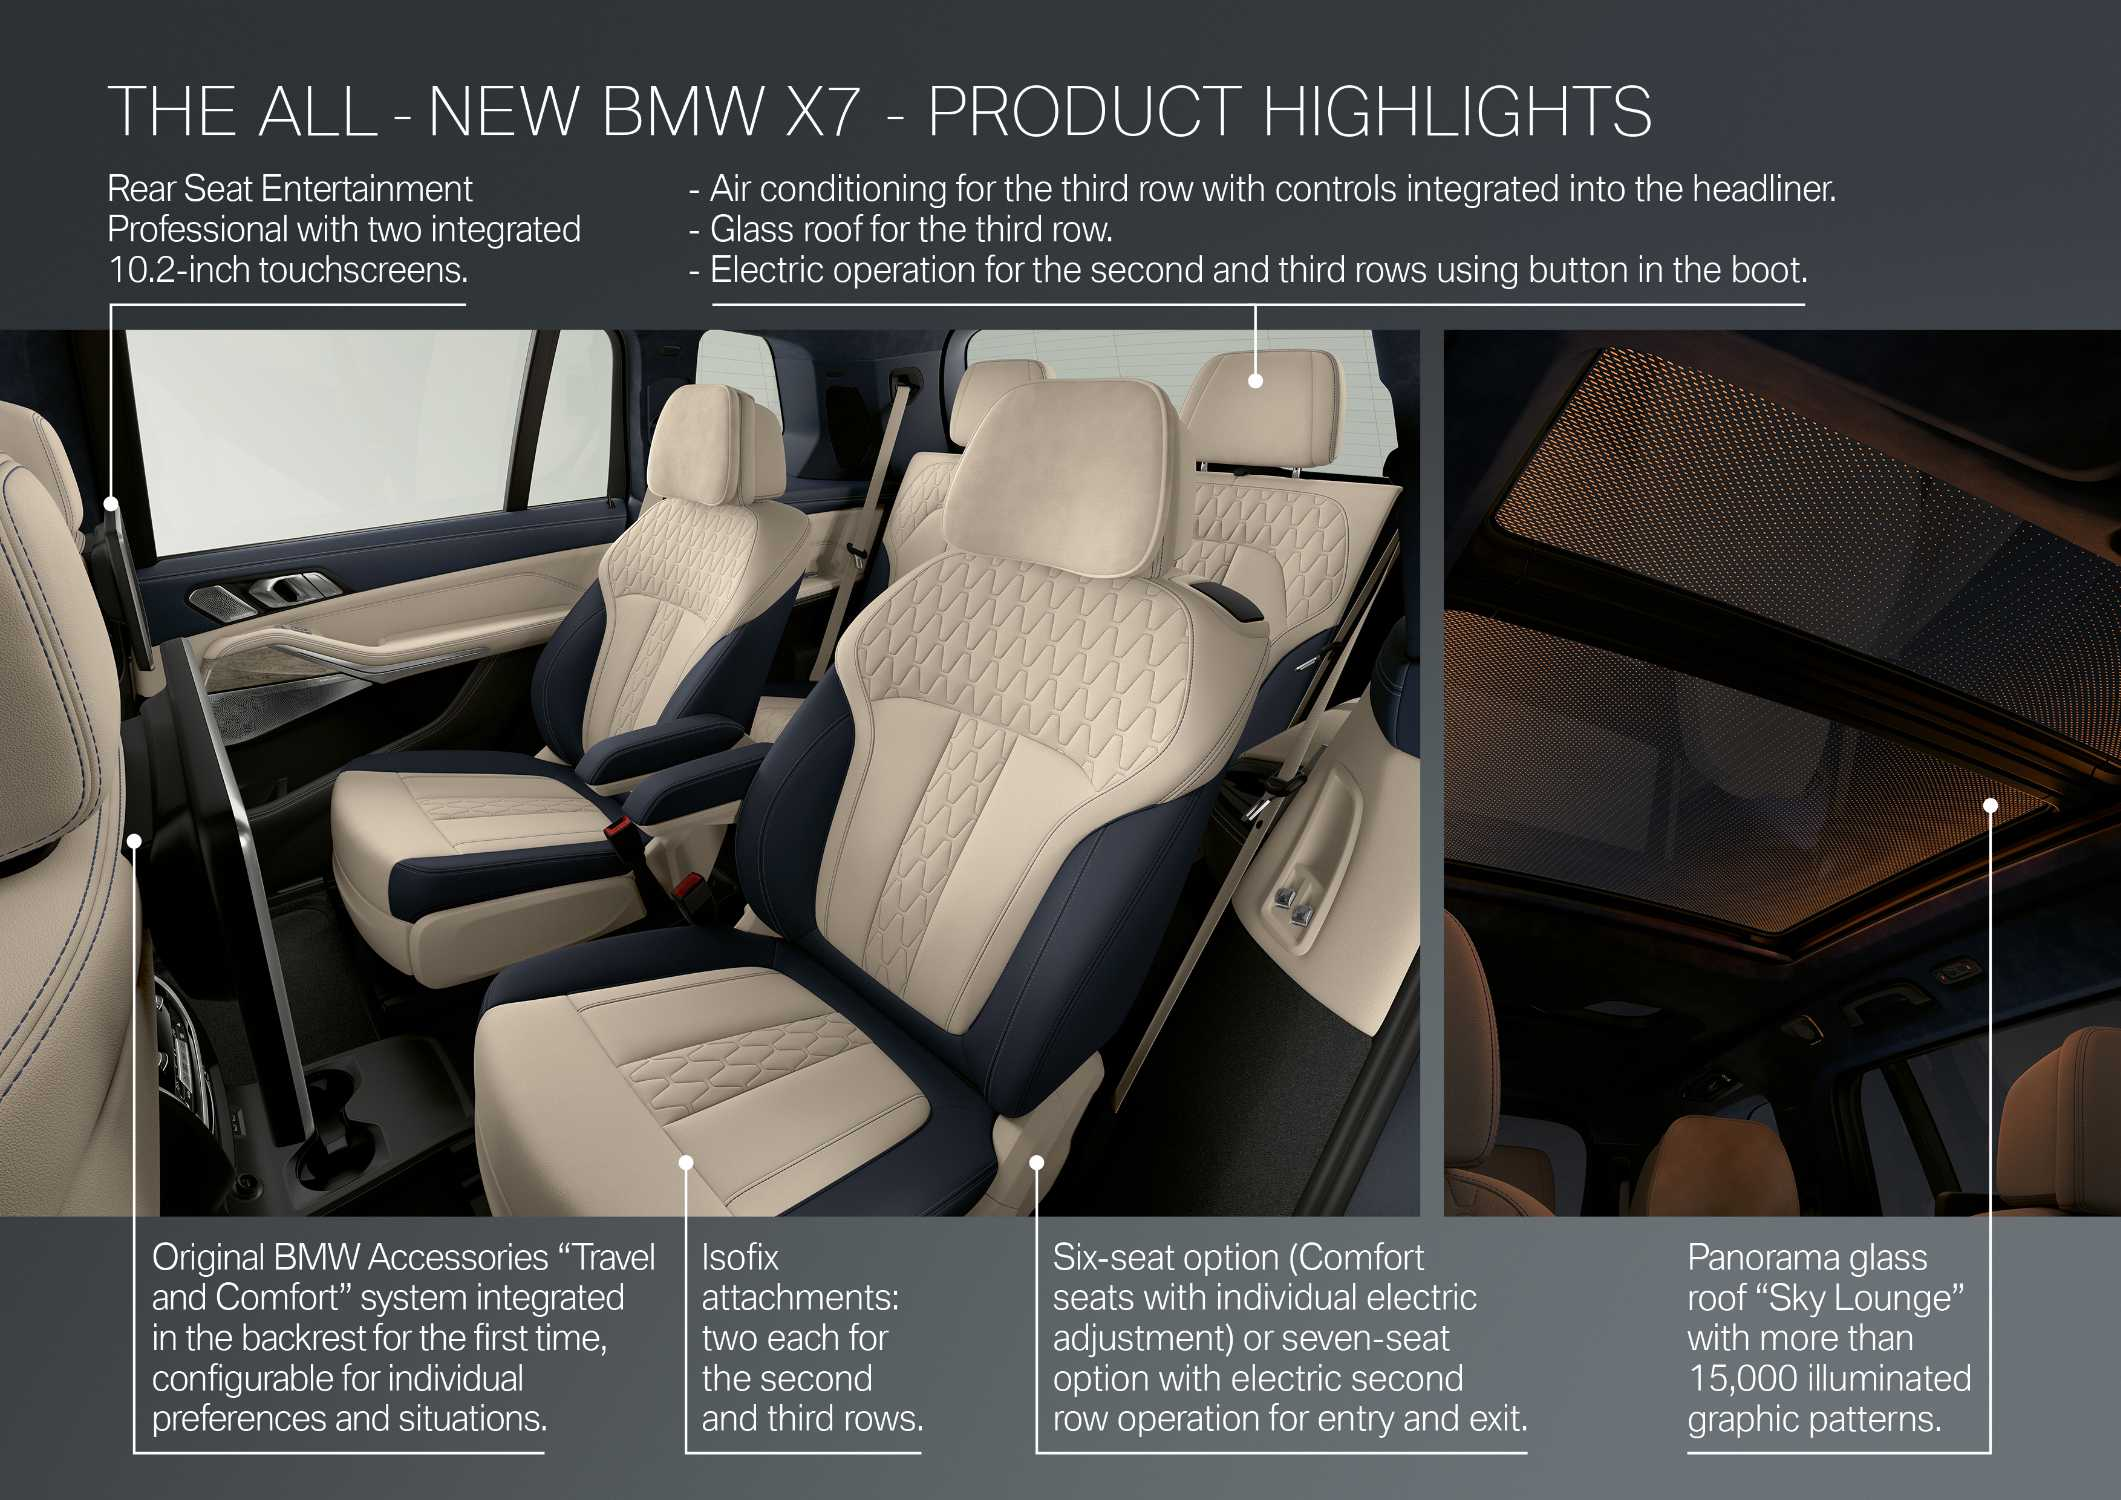 The first-ever BMW X7 - Product highlights (10/2018).